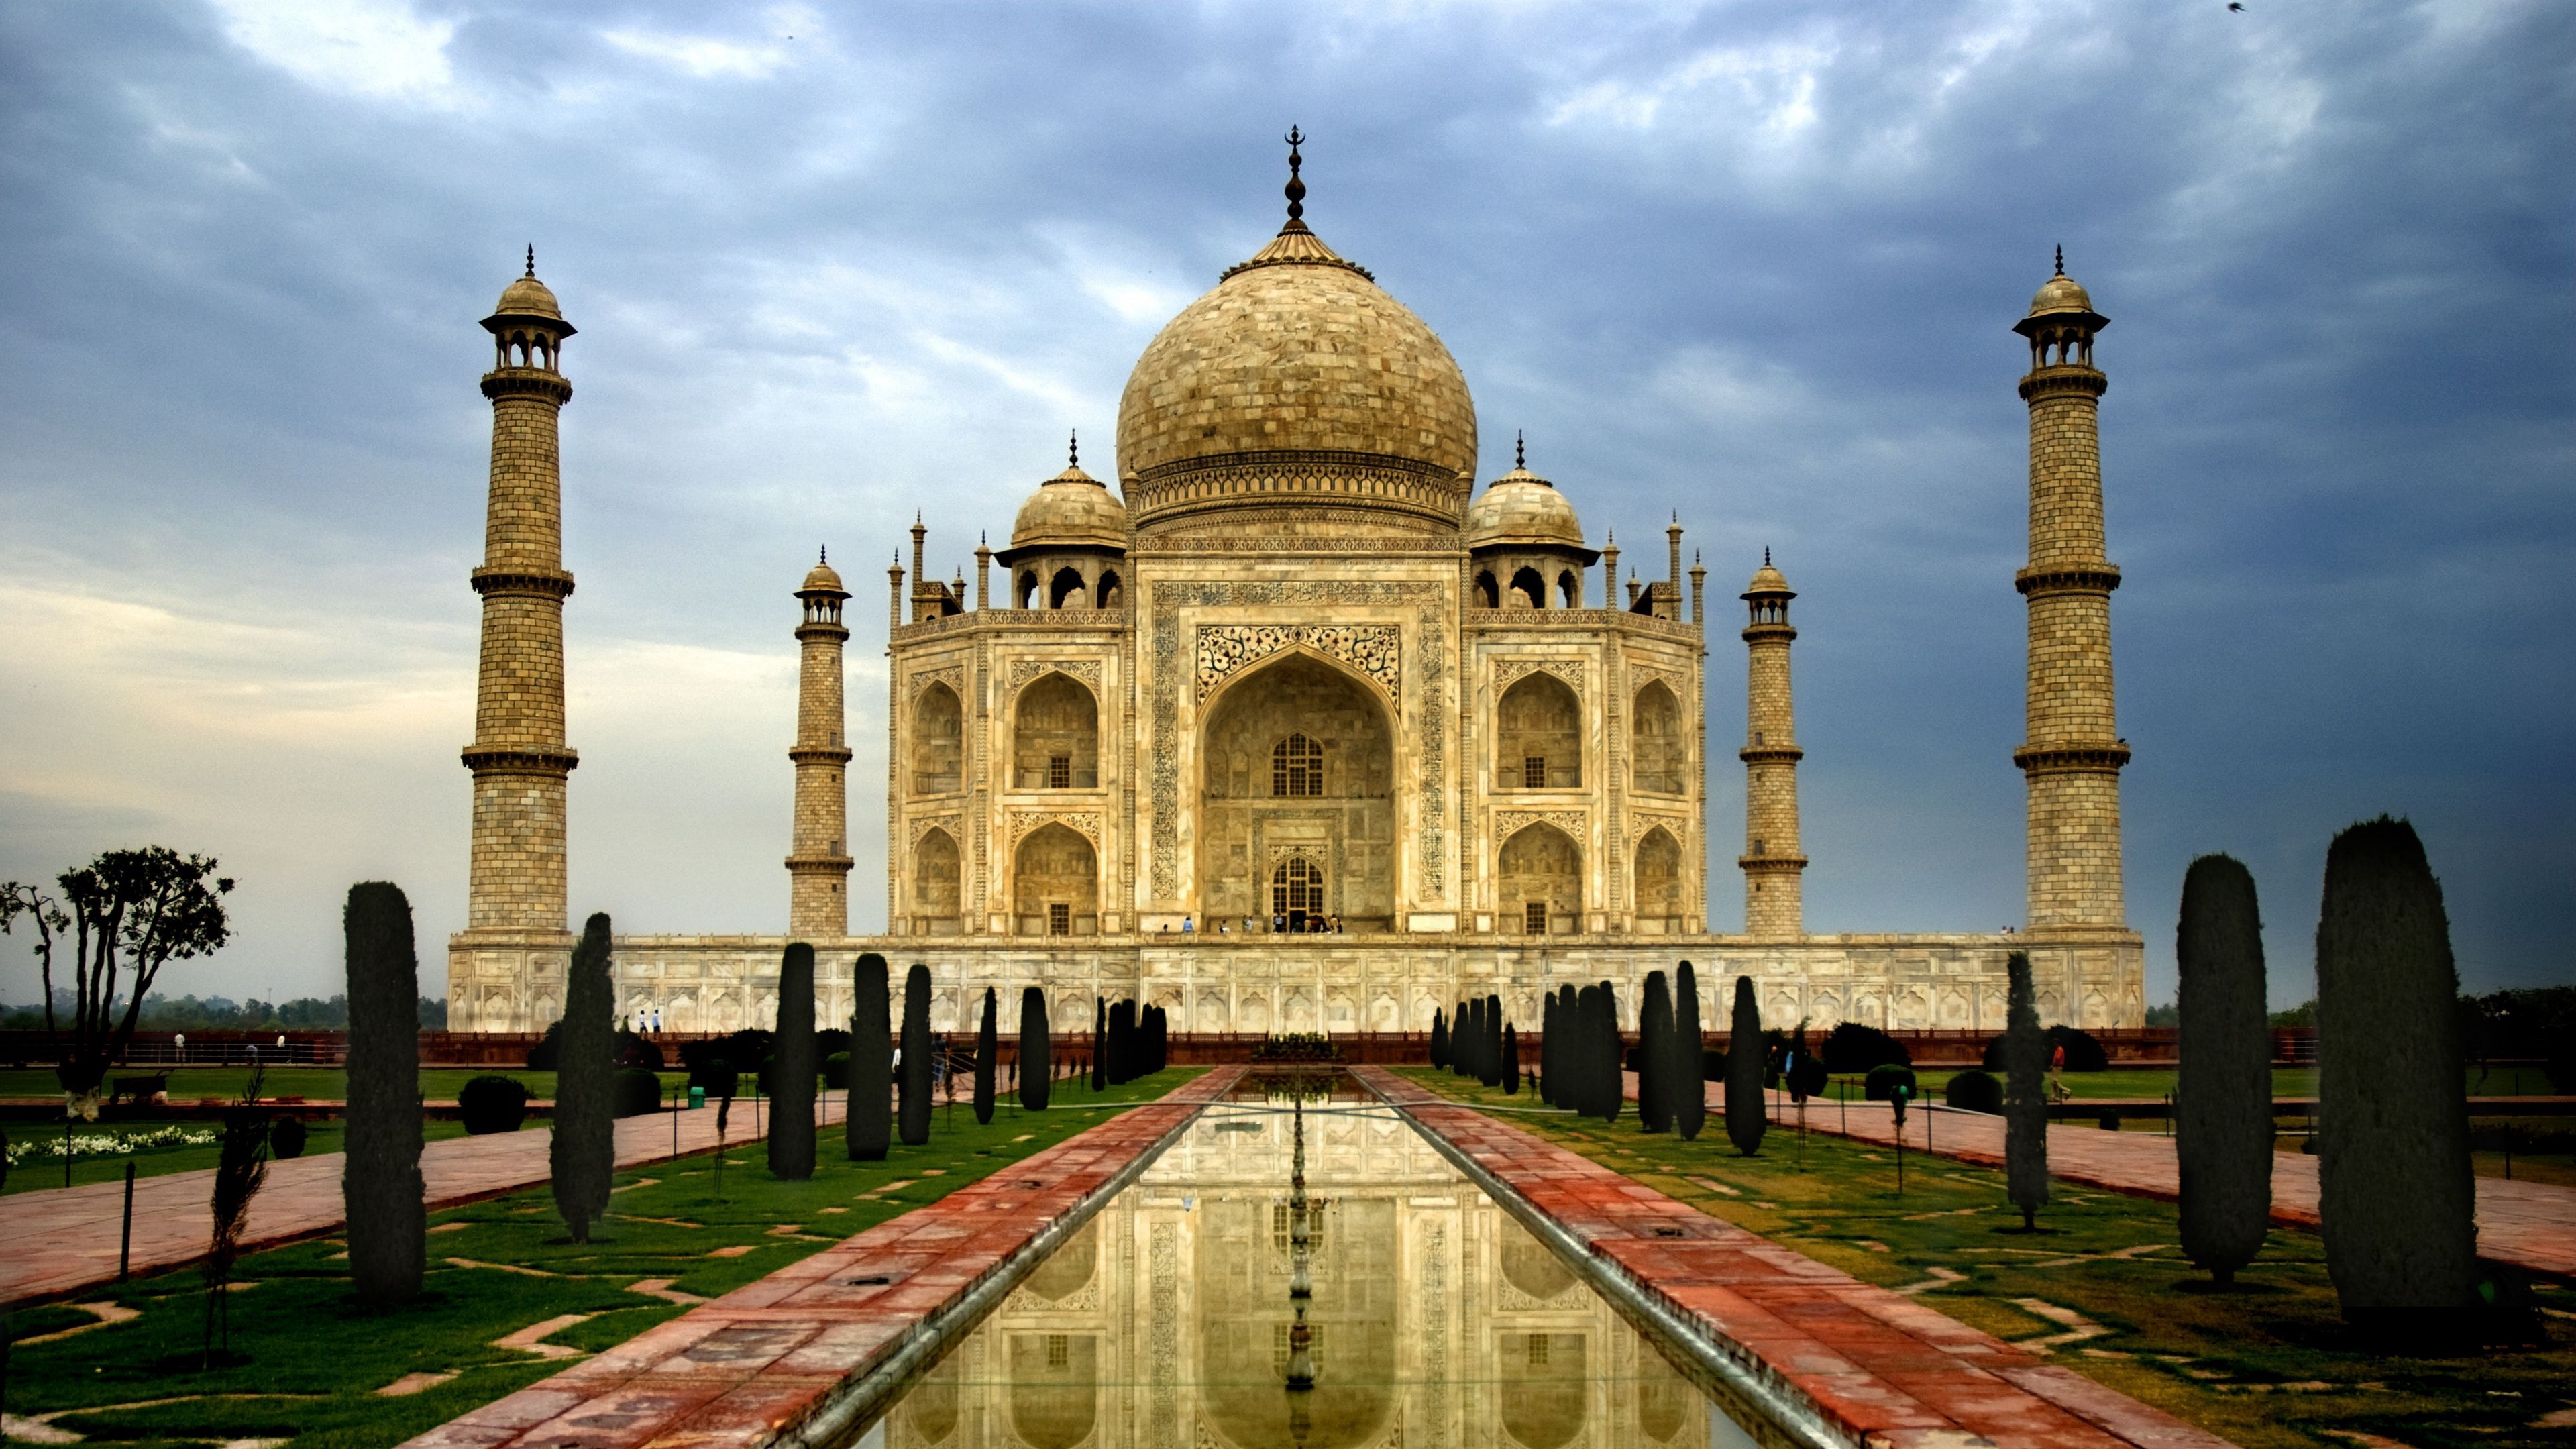 india city agra taj mahal architecture marble domes minarets cloudy day sky clouds 4k 1538064938 - india, city, agra, taj mahal, architecture, marble, domes, minarets, cloudy, day, sky, clouds 4k - India, City, Agra